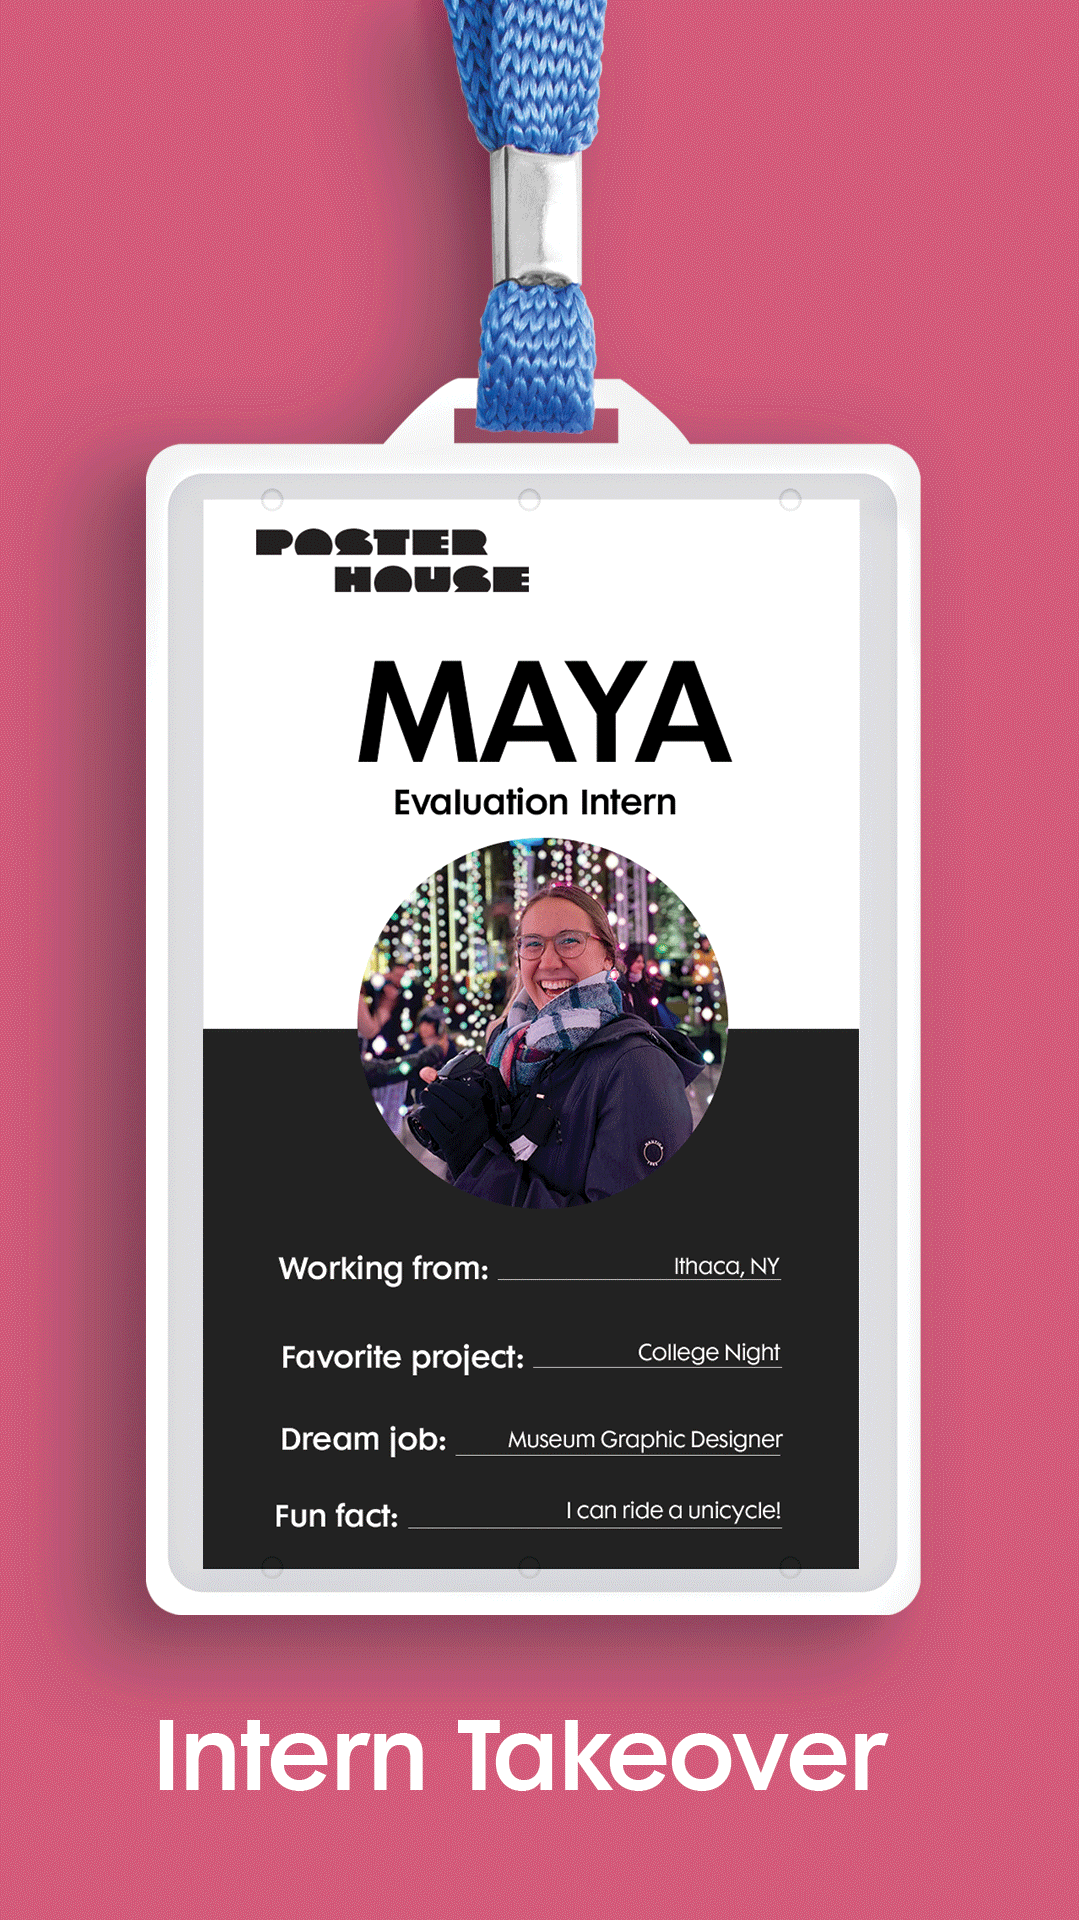 photo of a nametag on a pink background with a photo of a woman in a coat and the name Maya across the top